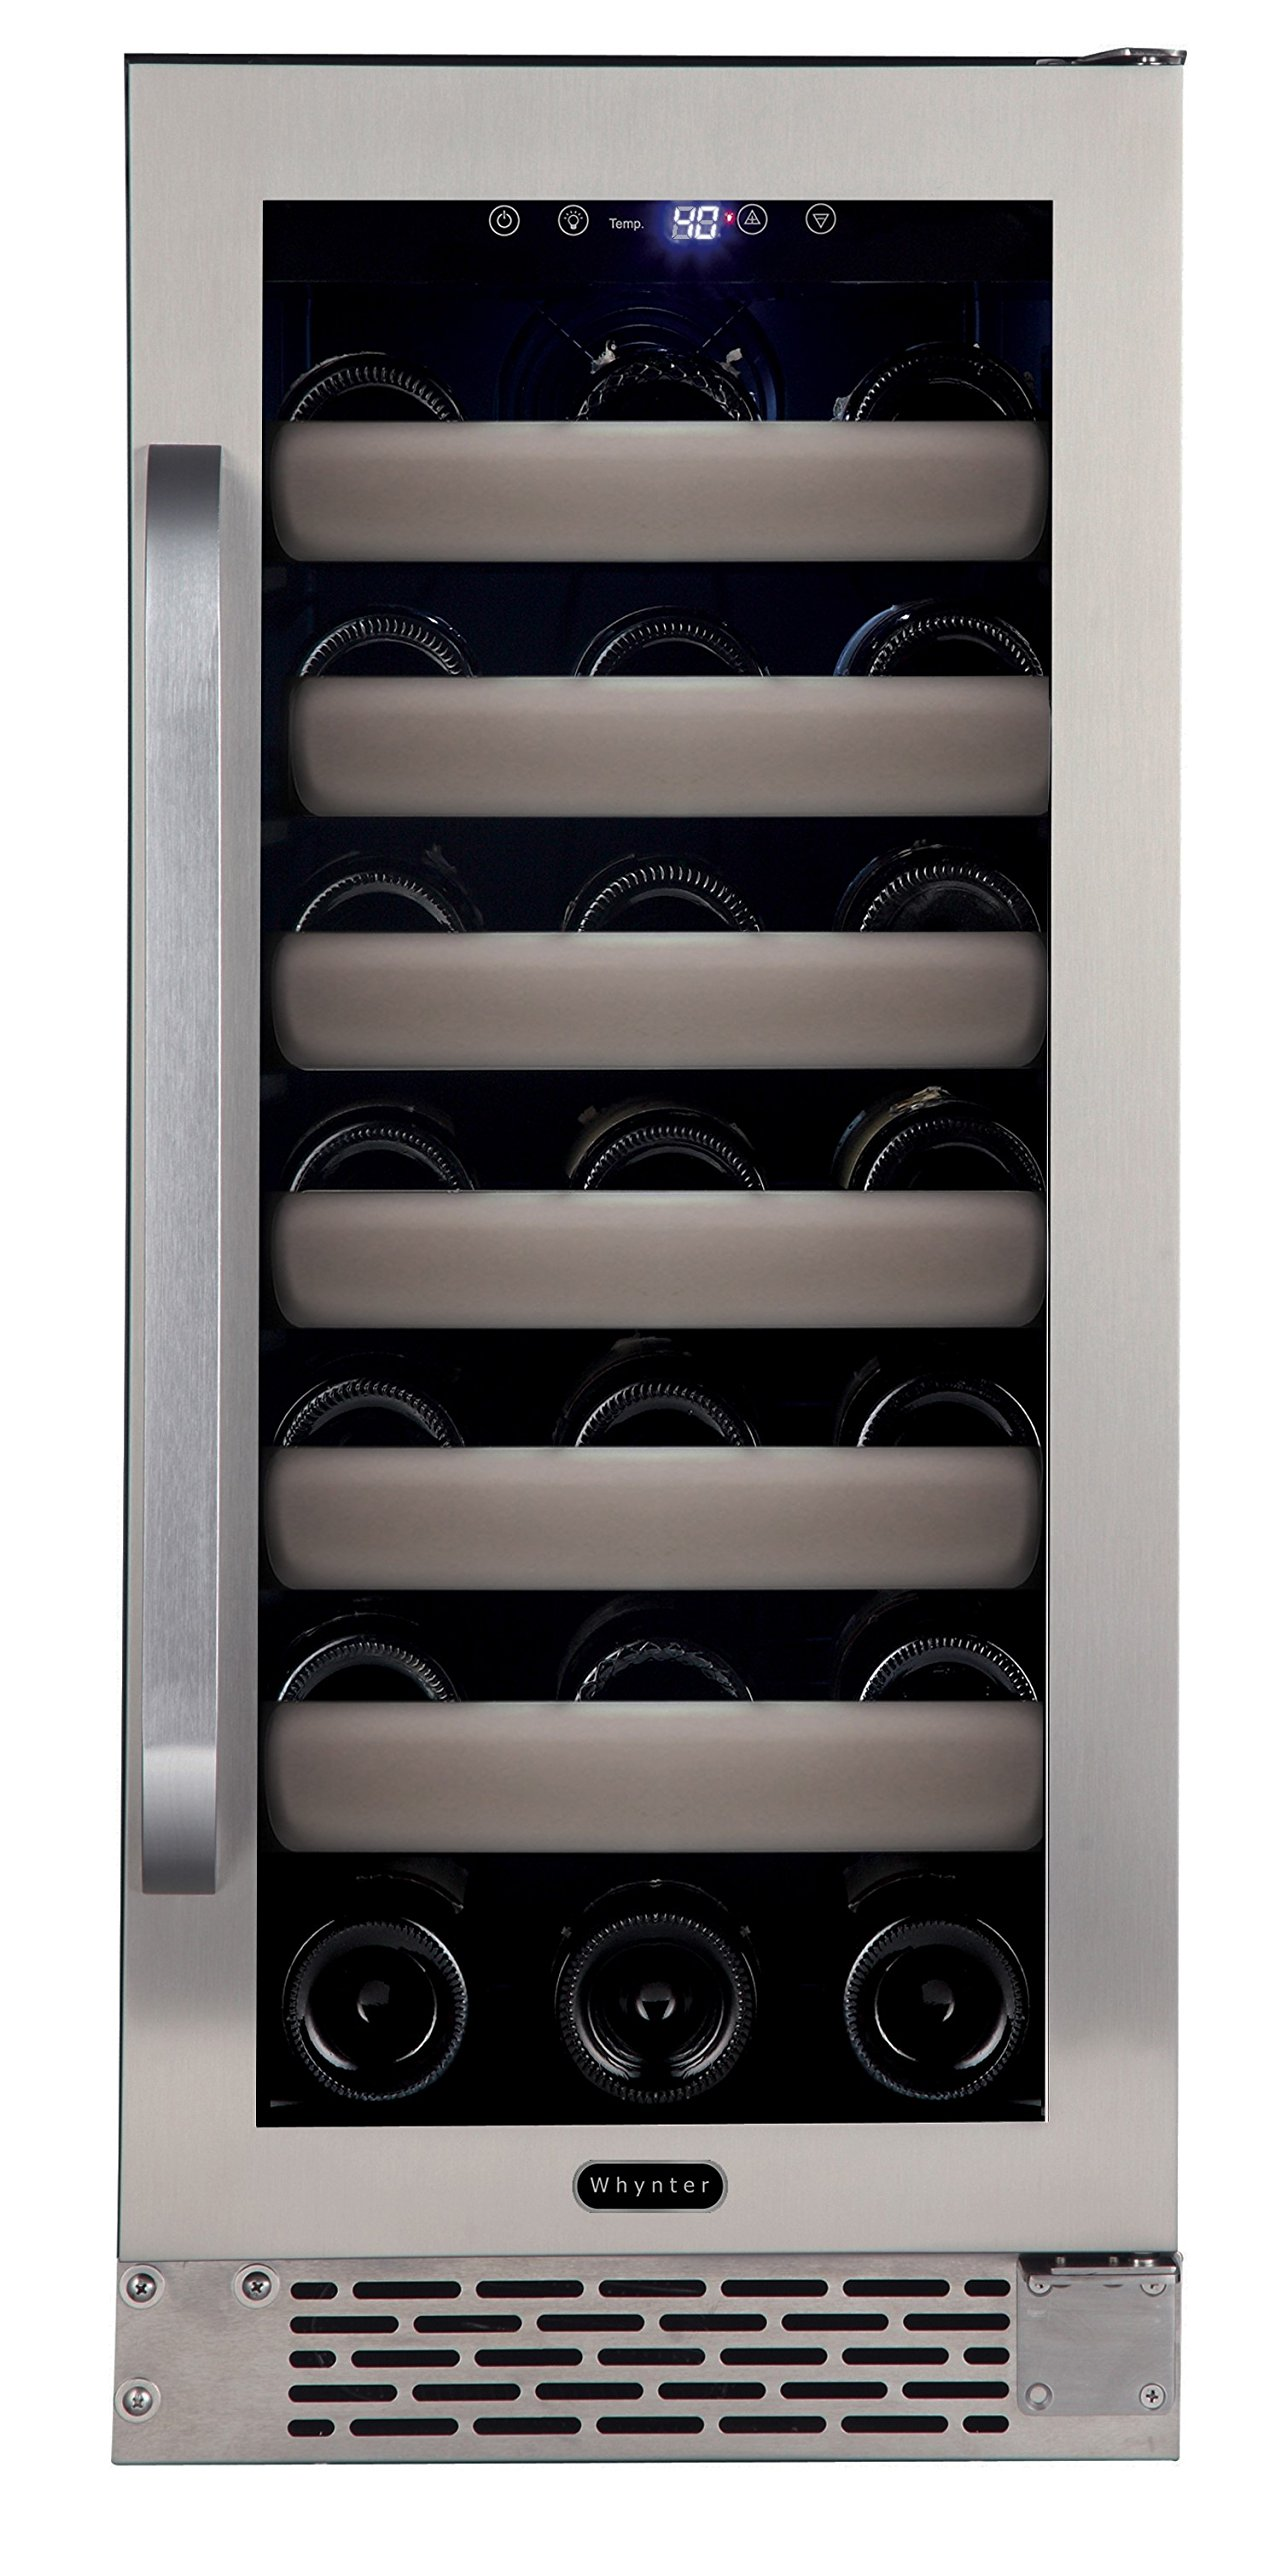 Whynter BWR-331SL Elite 33 Bottle Seamless Door Single Zone Built-in Wine Refrigerator, Stainless Steel/Black